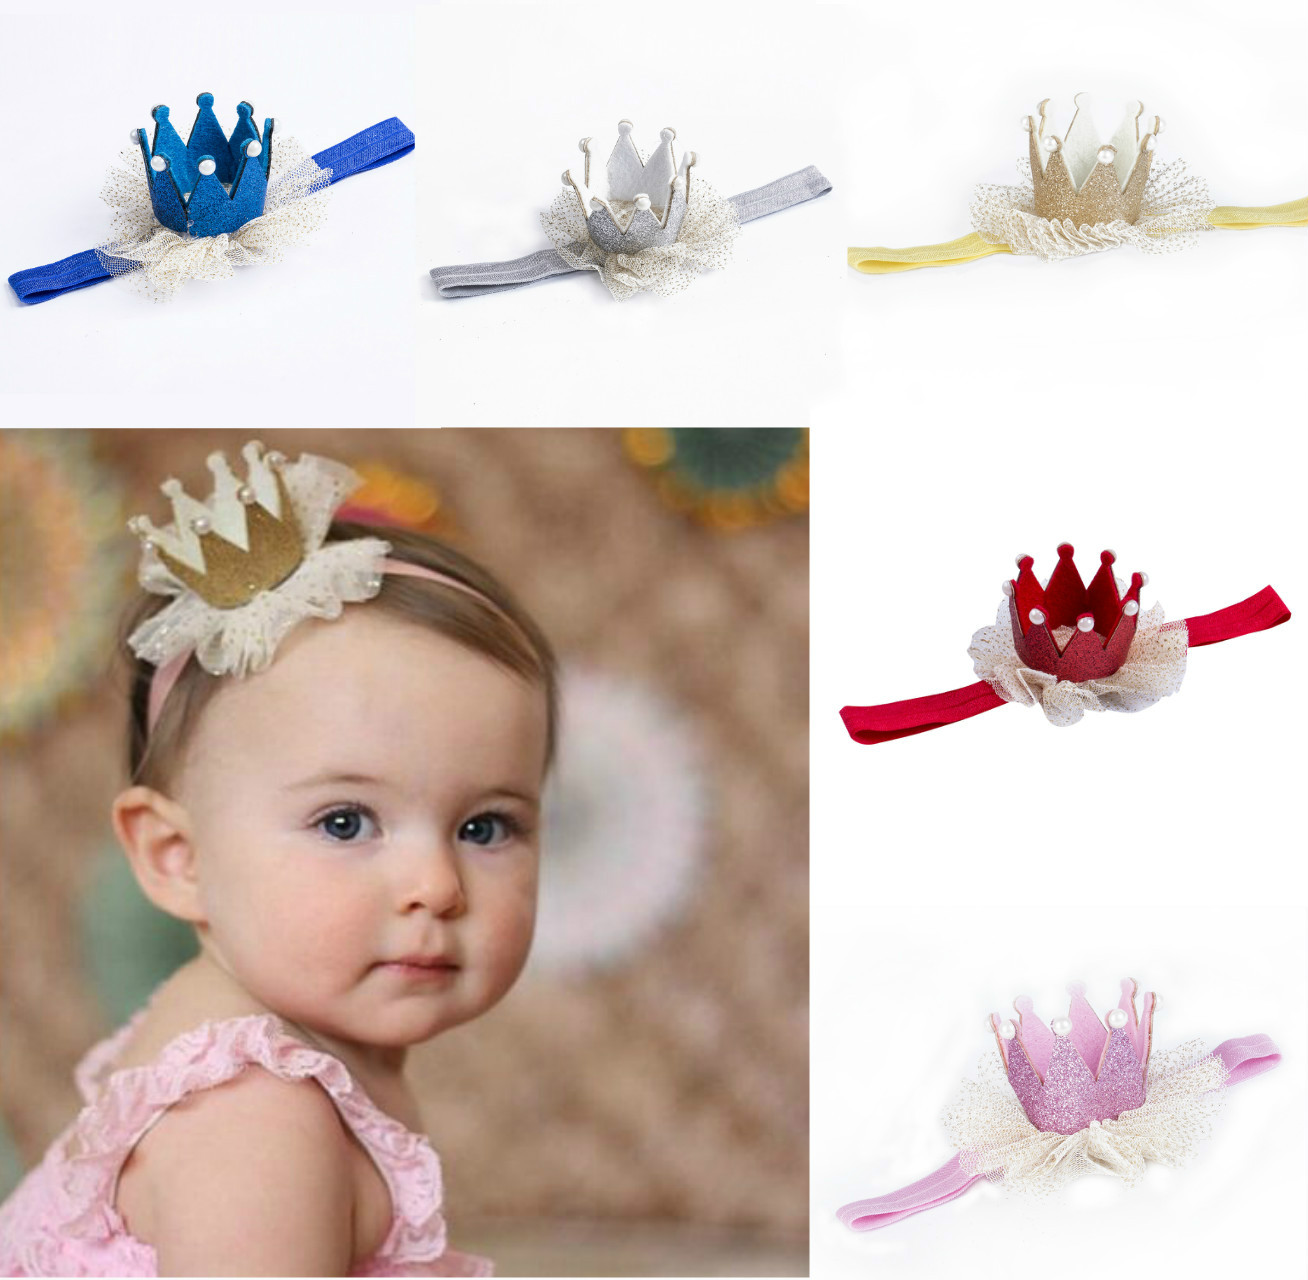 Baby Girl Hairband Headdress Newborn Baby Kids Flower Soft Elastic Tiara Hair Band Girls Bow Headband Hair Accessories детская футболка классическая унисекс printio бразилия